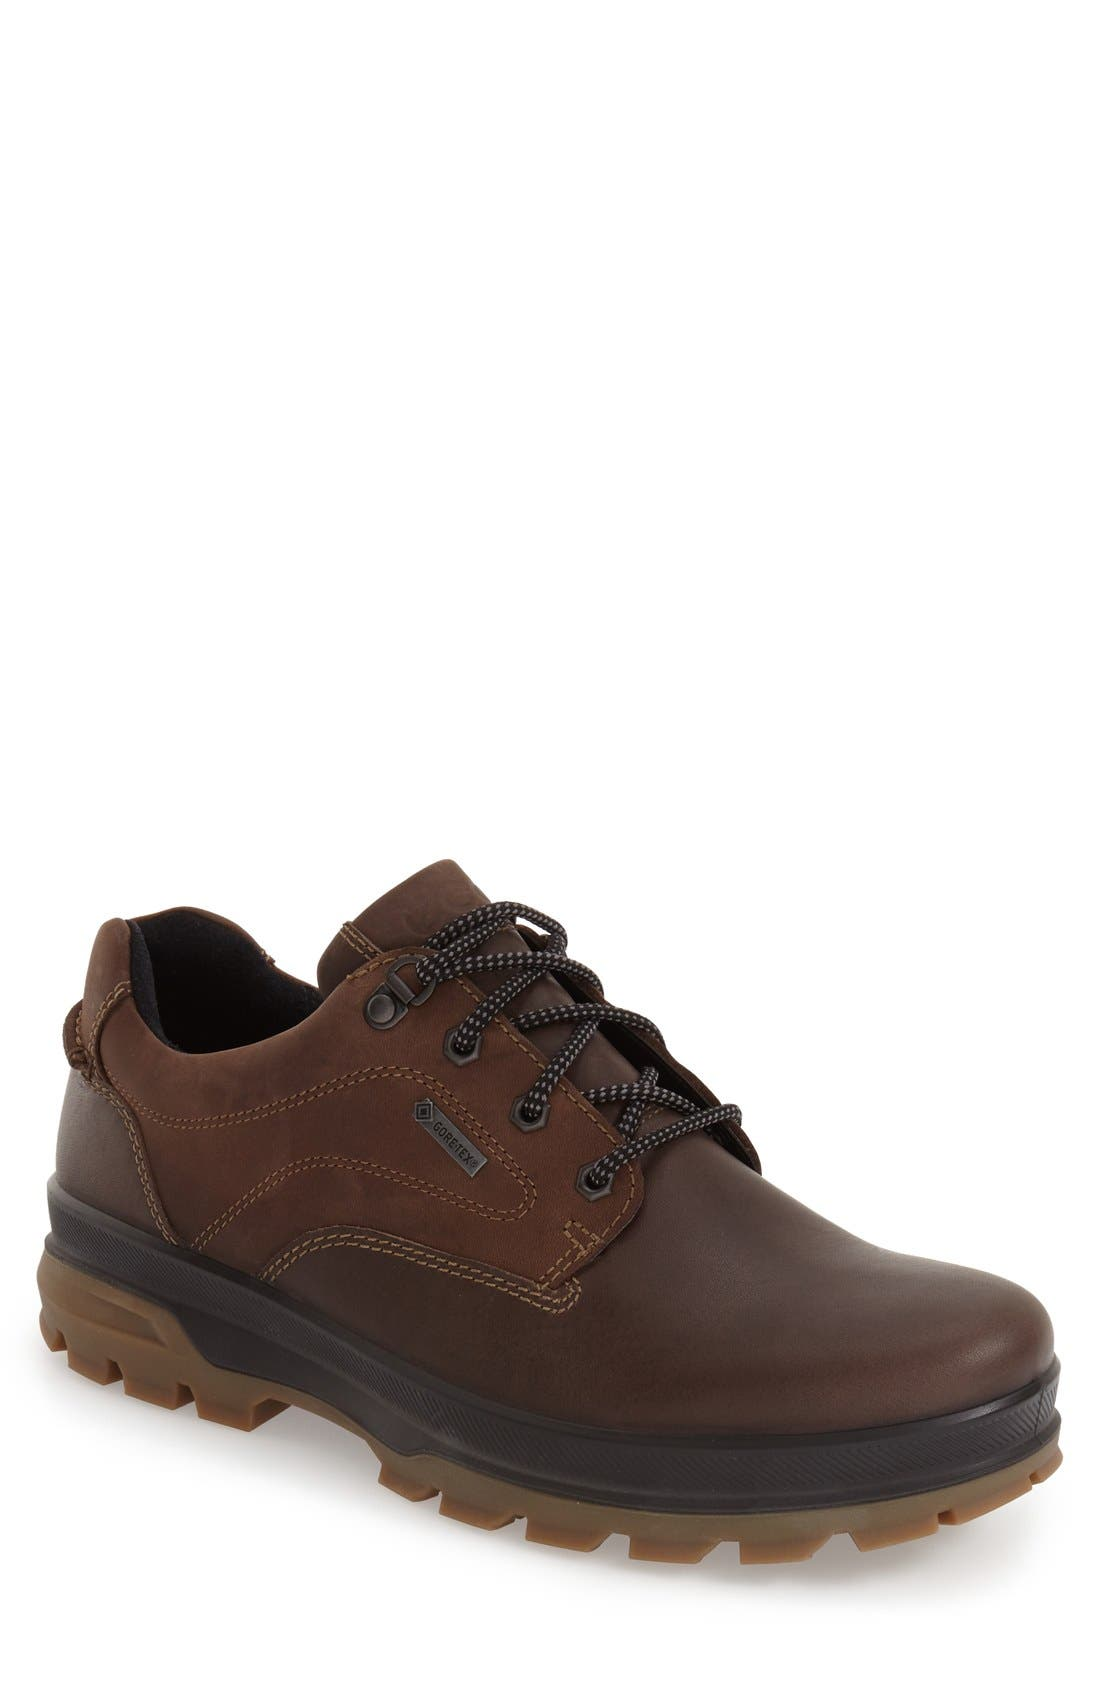 'Rugged Track GTX' Oxford,                         Main,                         color, DARK CLAY/ COFFEE LEATHER